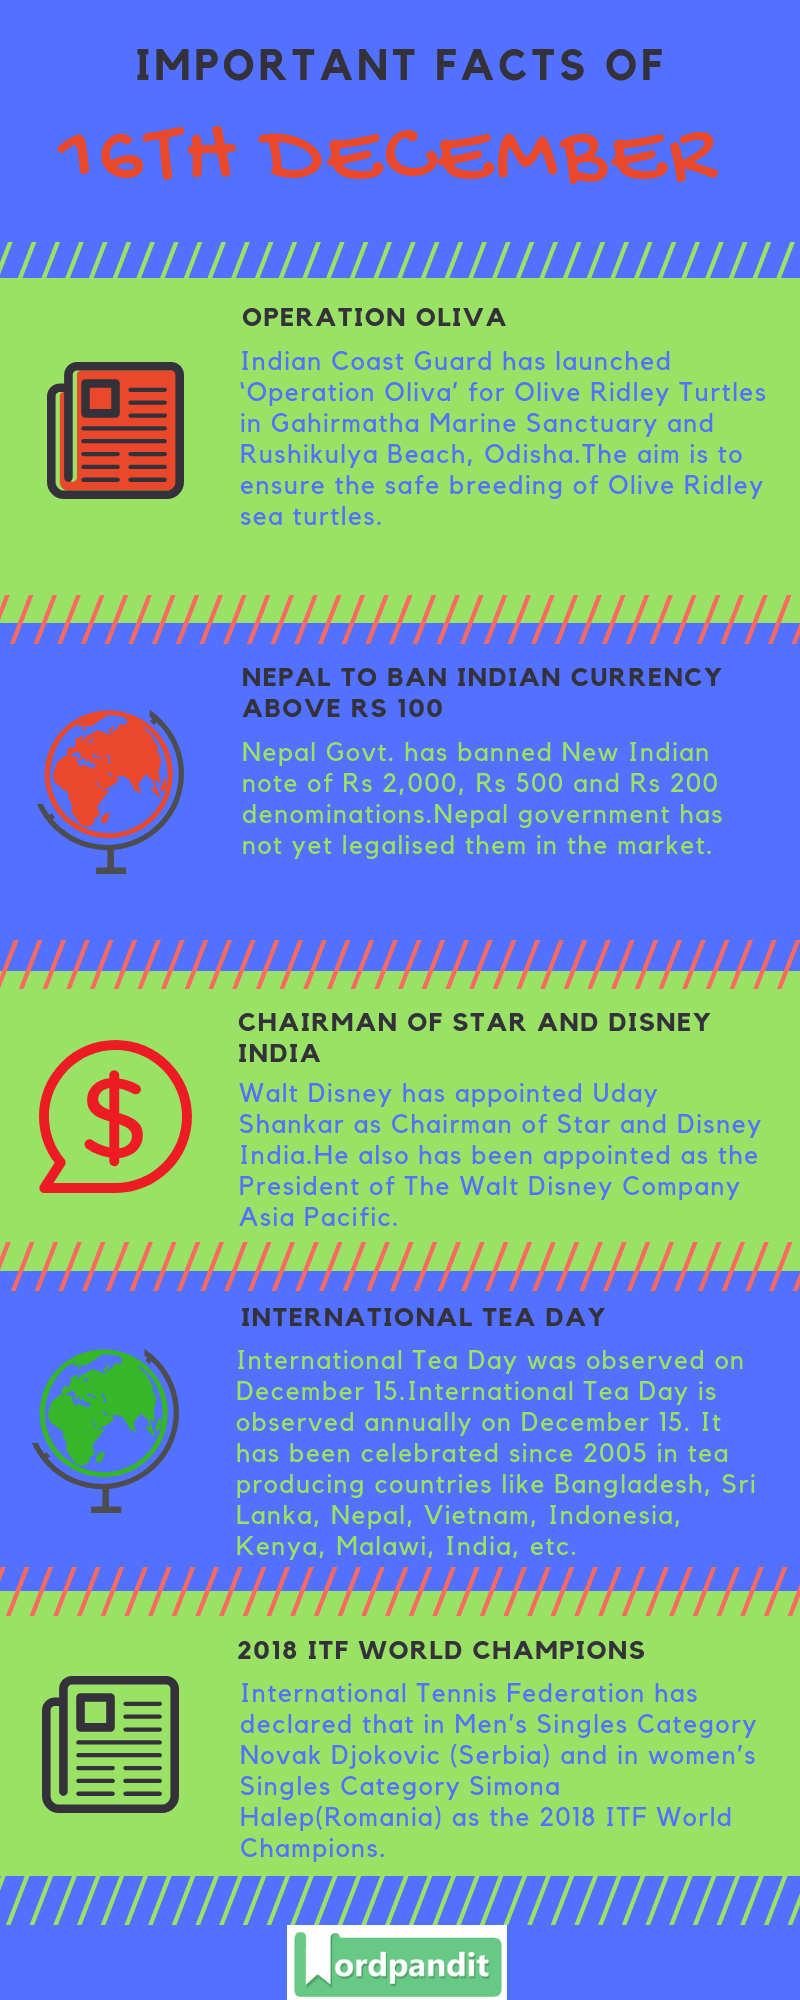 Daily Current Affairs 16 December 2018 Current Affairs Quiz 16 December 2018 Current Affairs Infographic